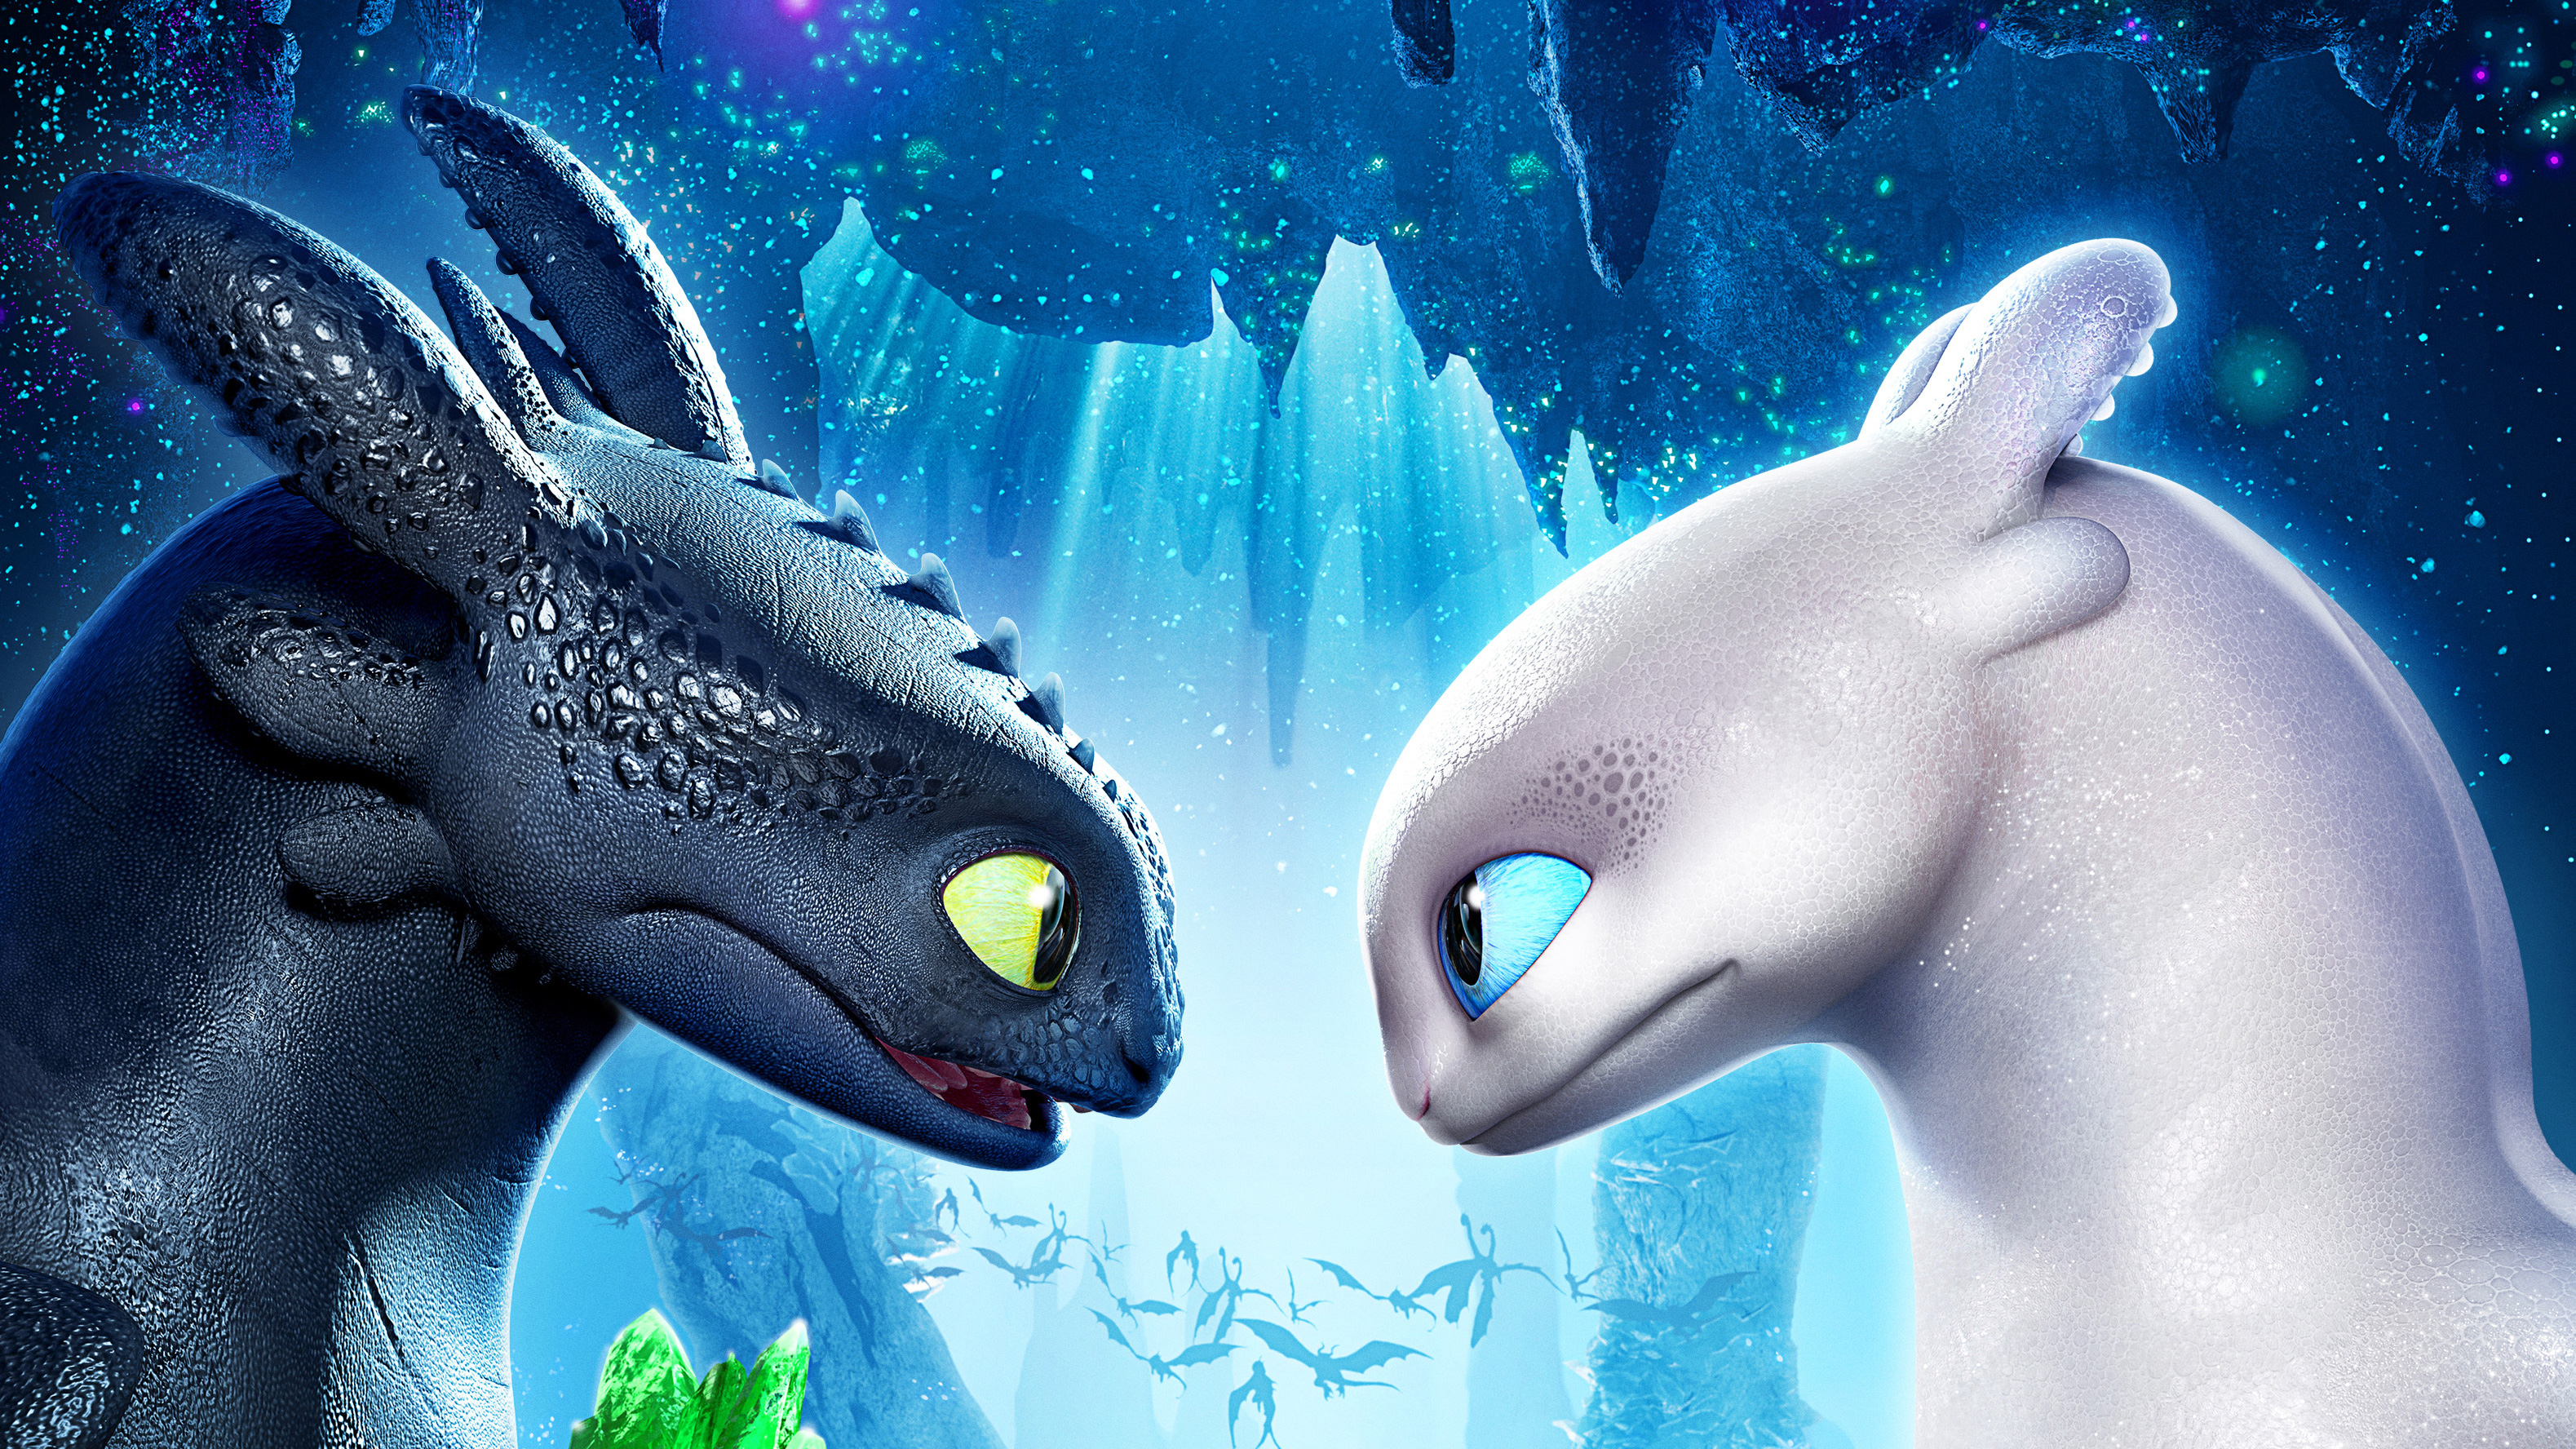 Toothless with his girlfirend night fury 4k hd movies 4k - Toothless wallpaper ...